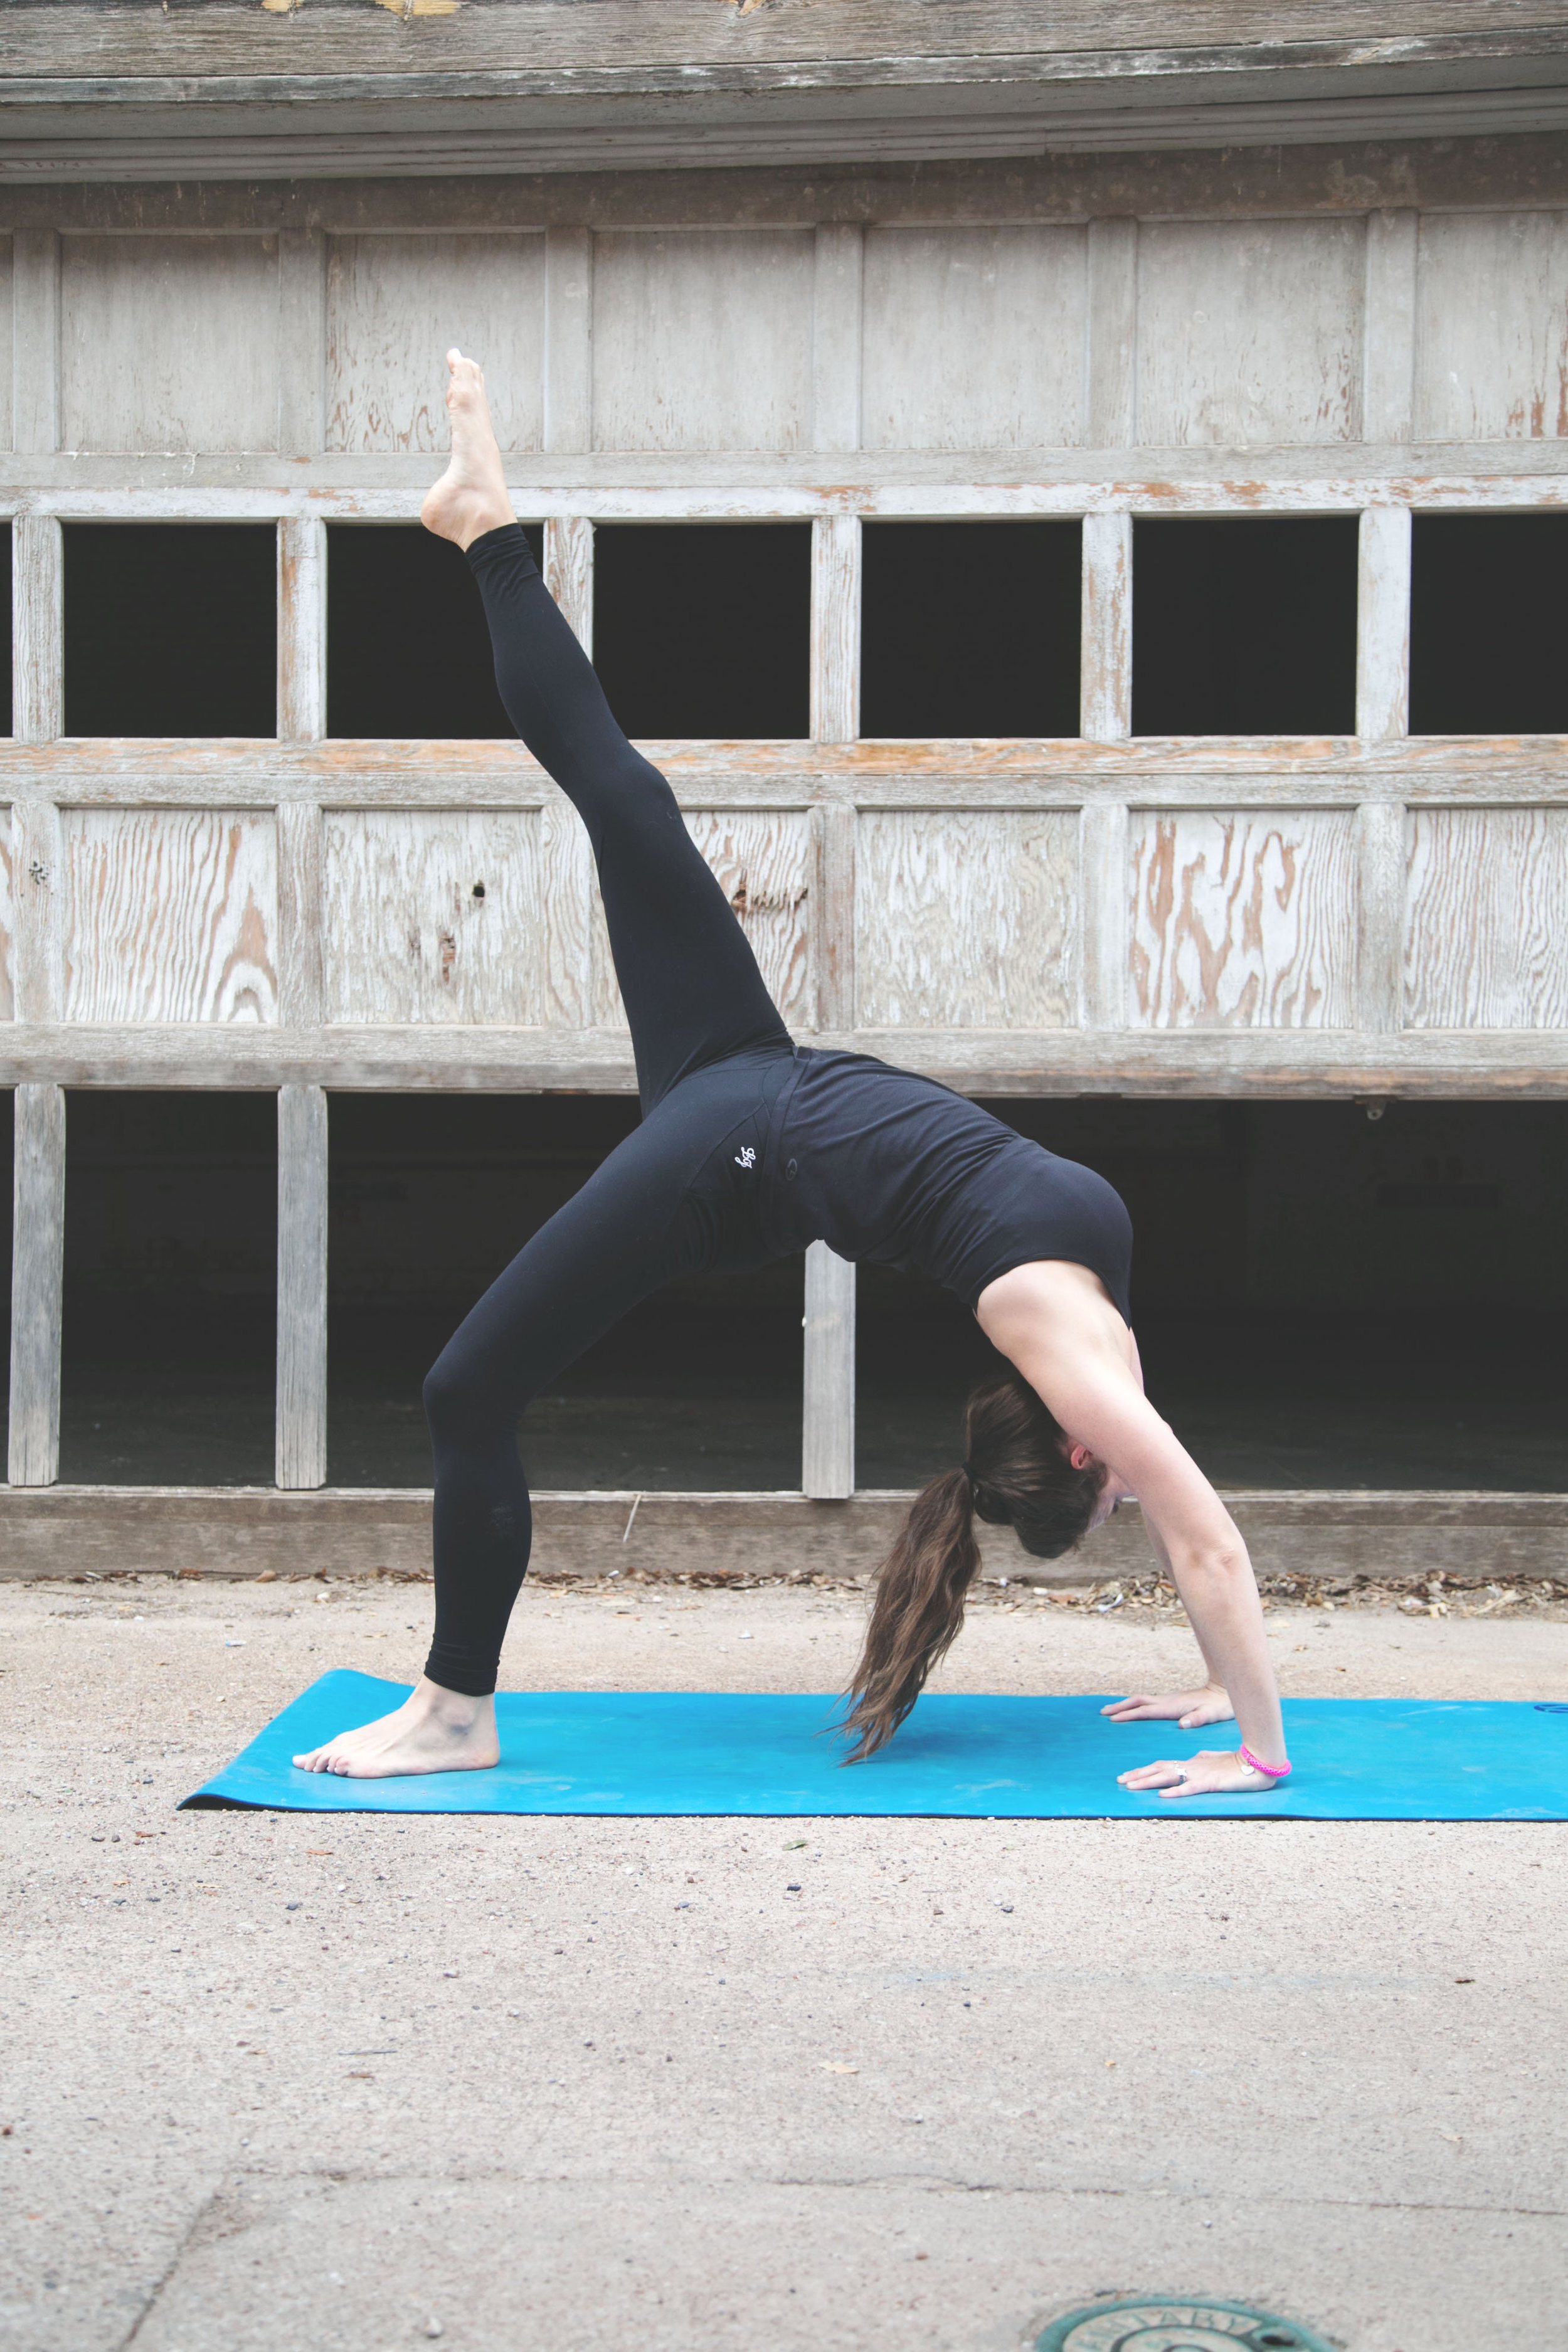 Set some goals to improve and Join the #TaketheLeap 30-day Yoga Challenge with @brittanysuell @prana @fitapproach